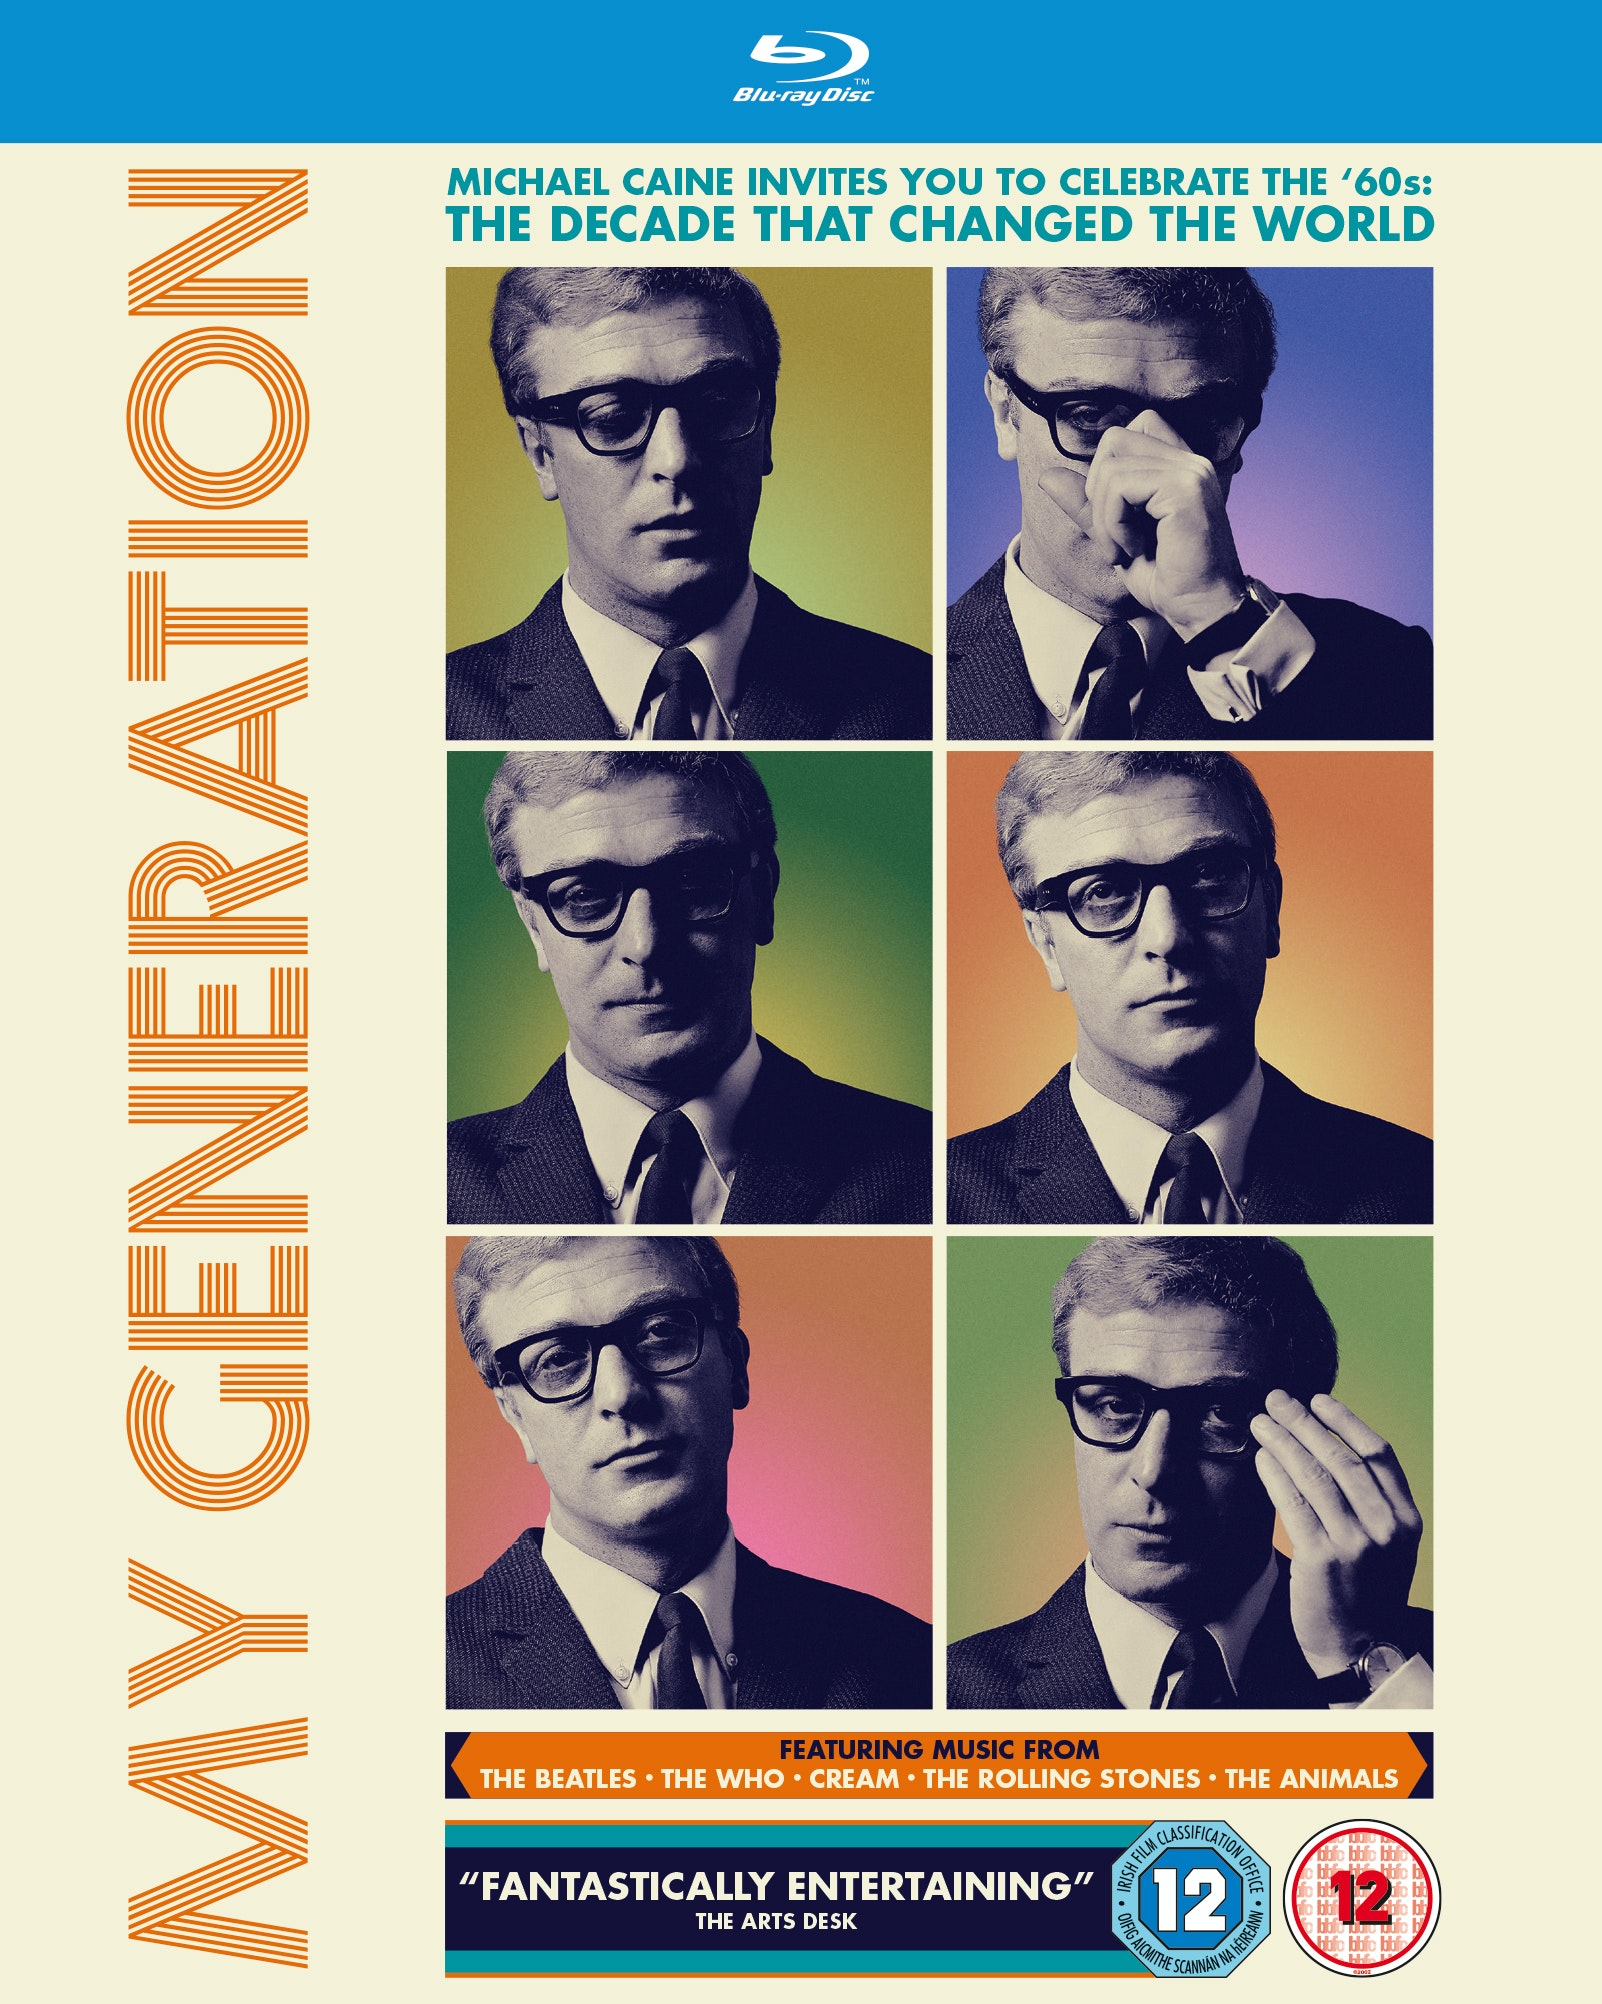 MY GENERATION sweepstakes